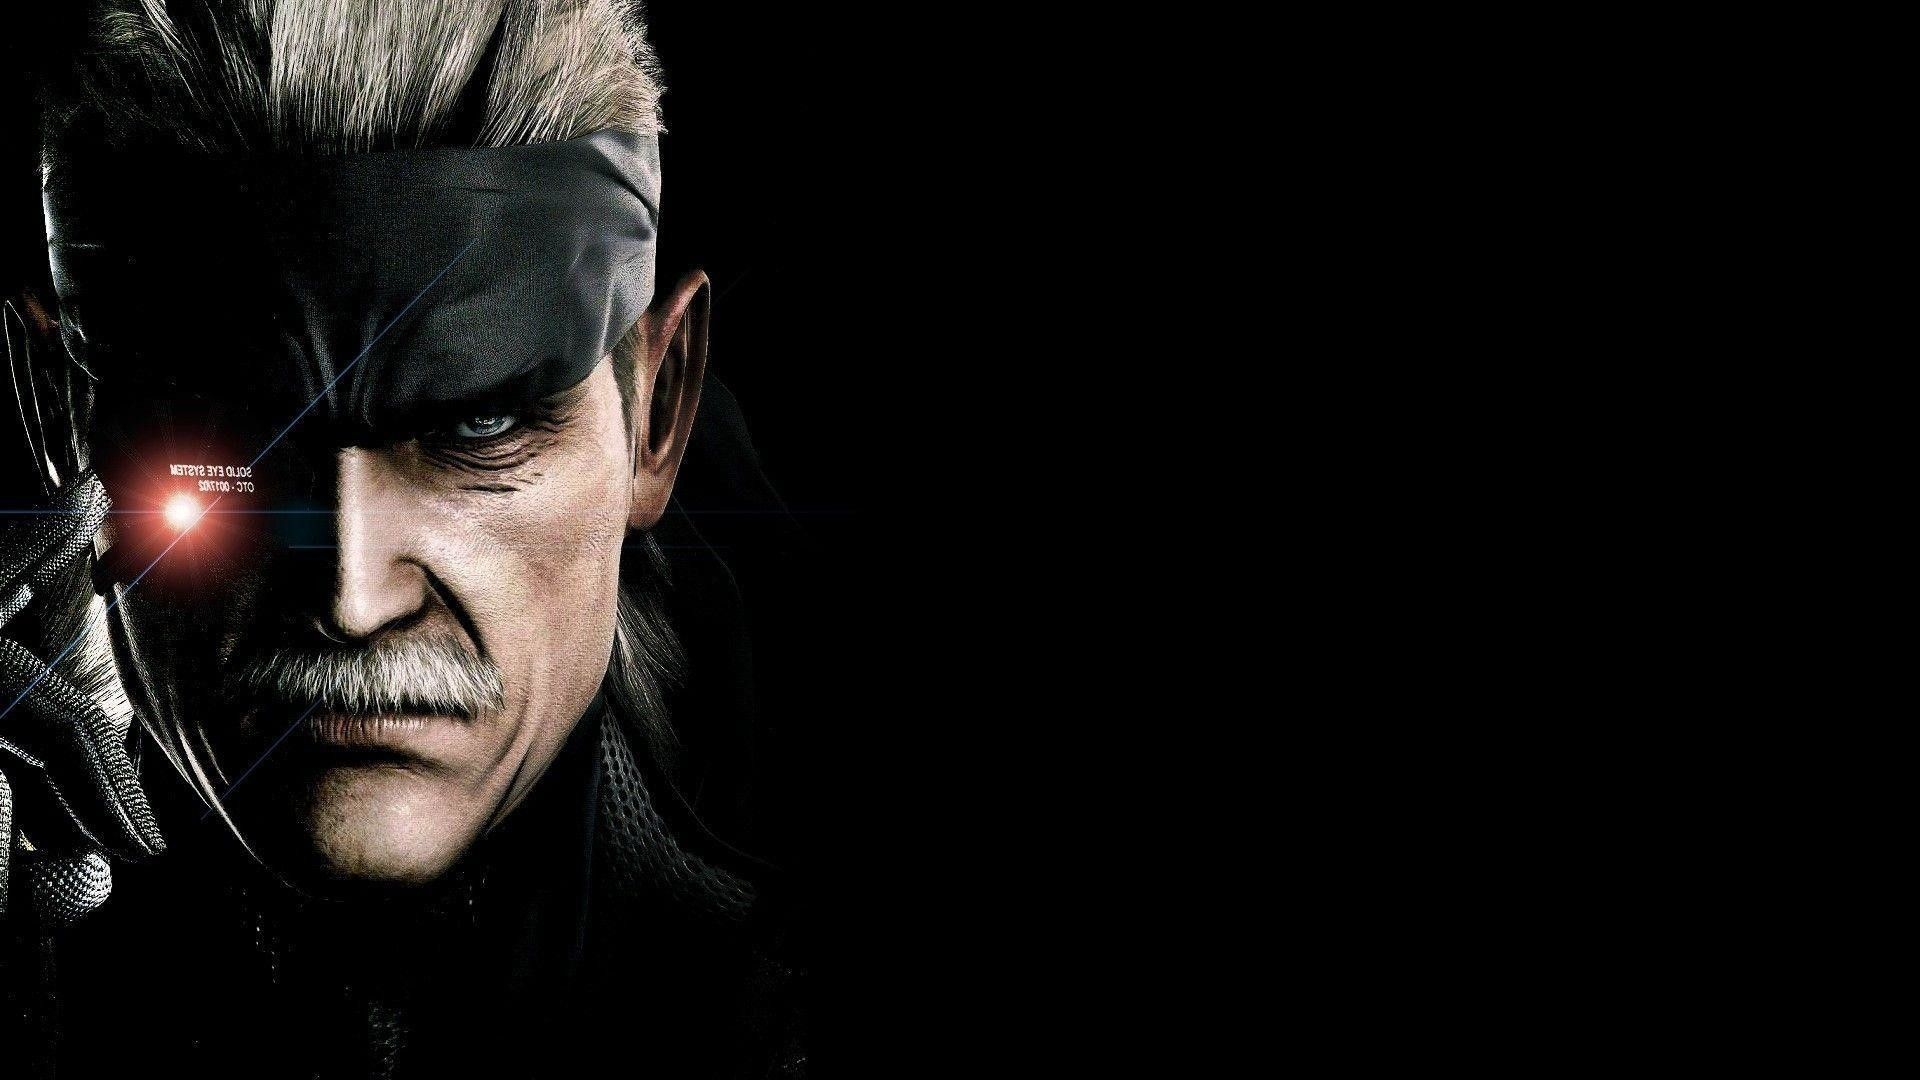 1920x1080 images for solid snake wallpaper mgs4 favorite